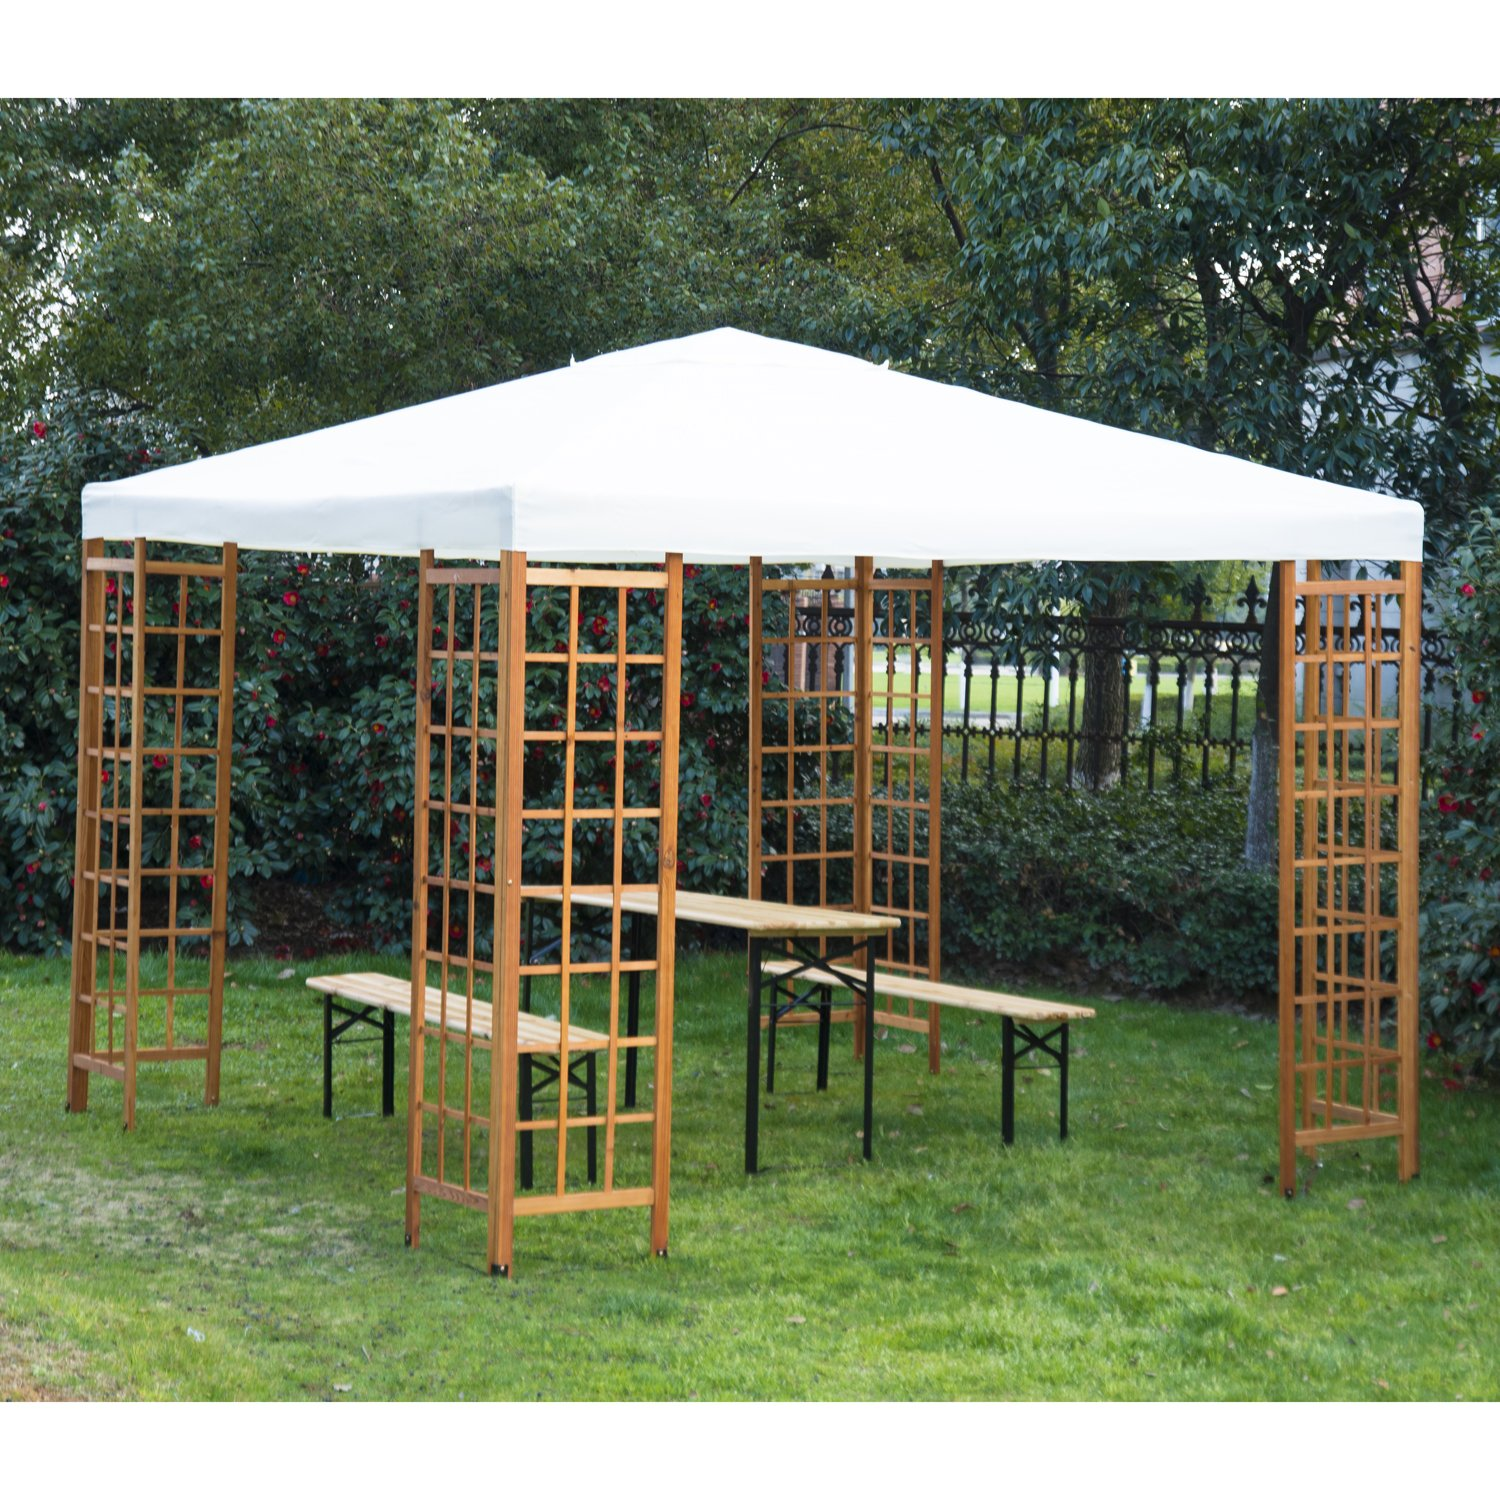 Outsunny 3 X M Patio Garden Wooden Framed Gazebo Marquee Sun Shade Party Tent Canopy Shelter Pavilion Without Table Beige